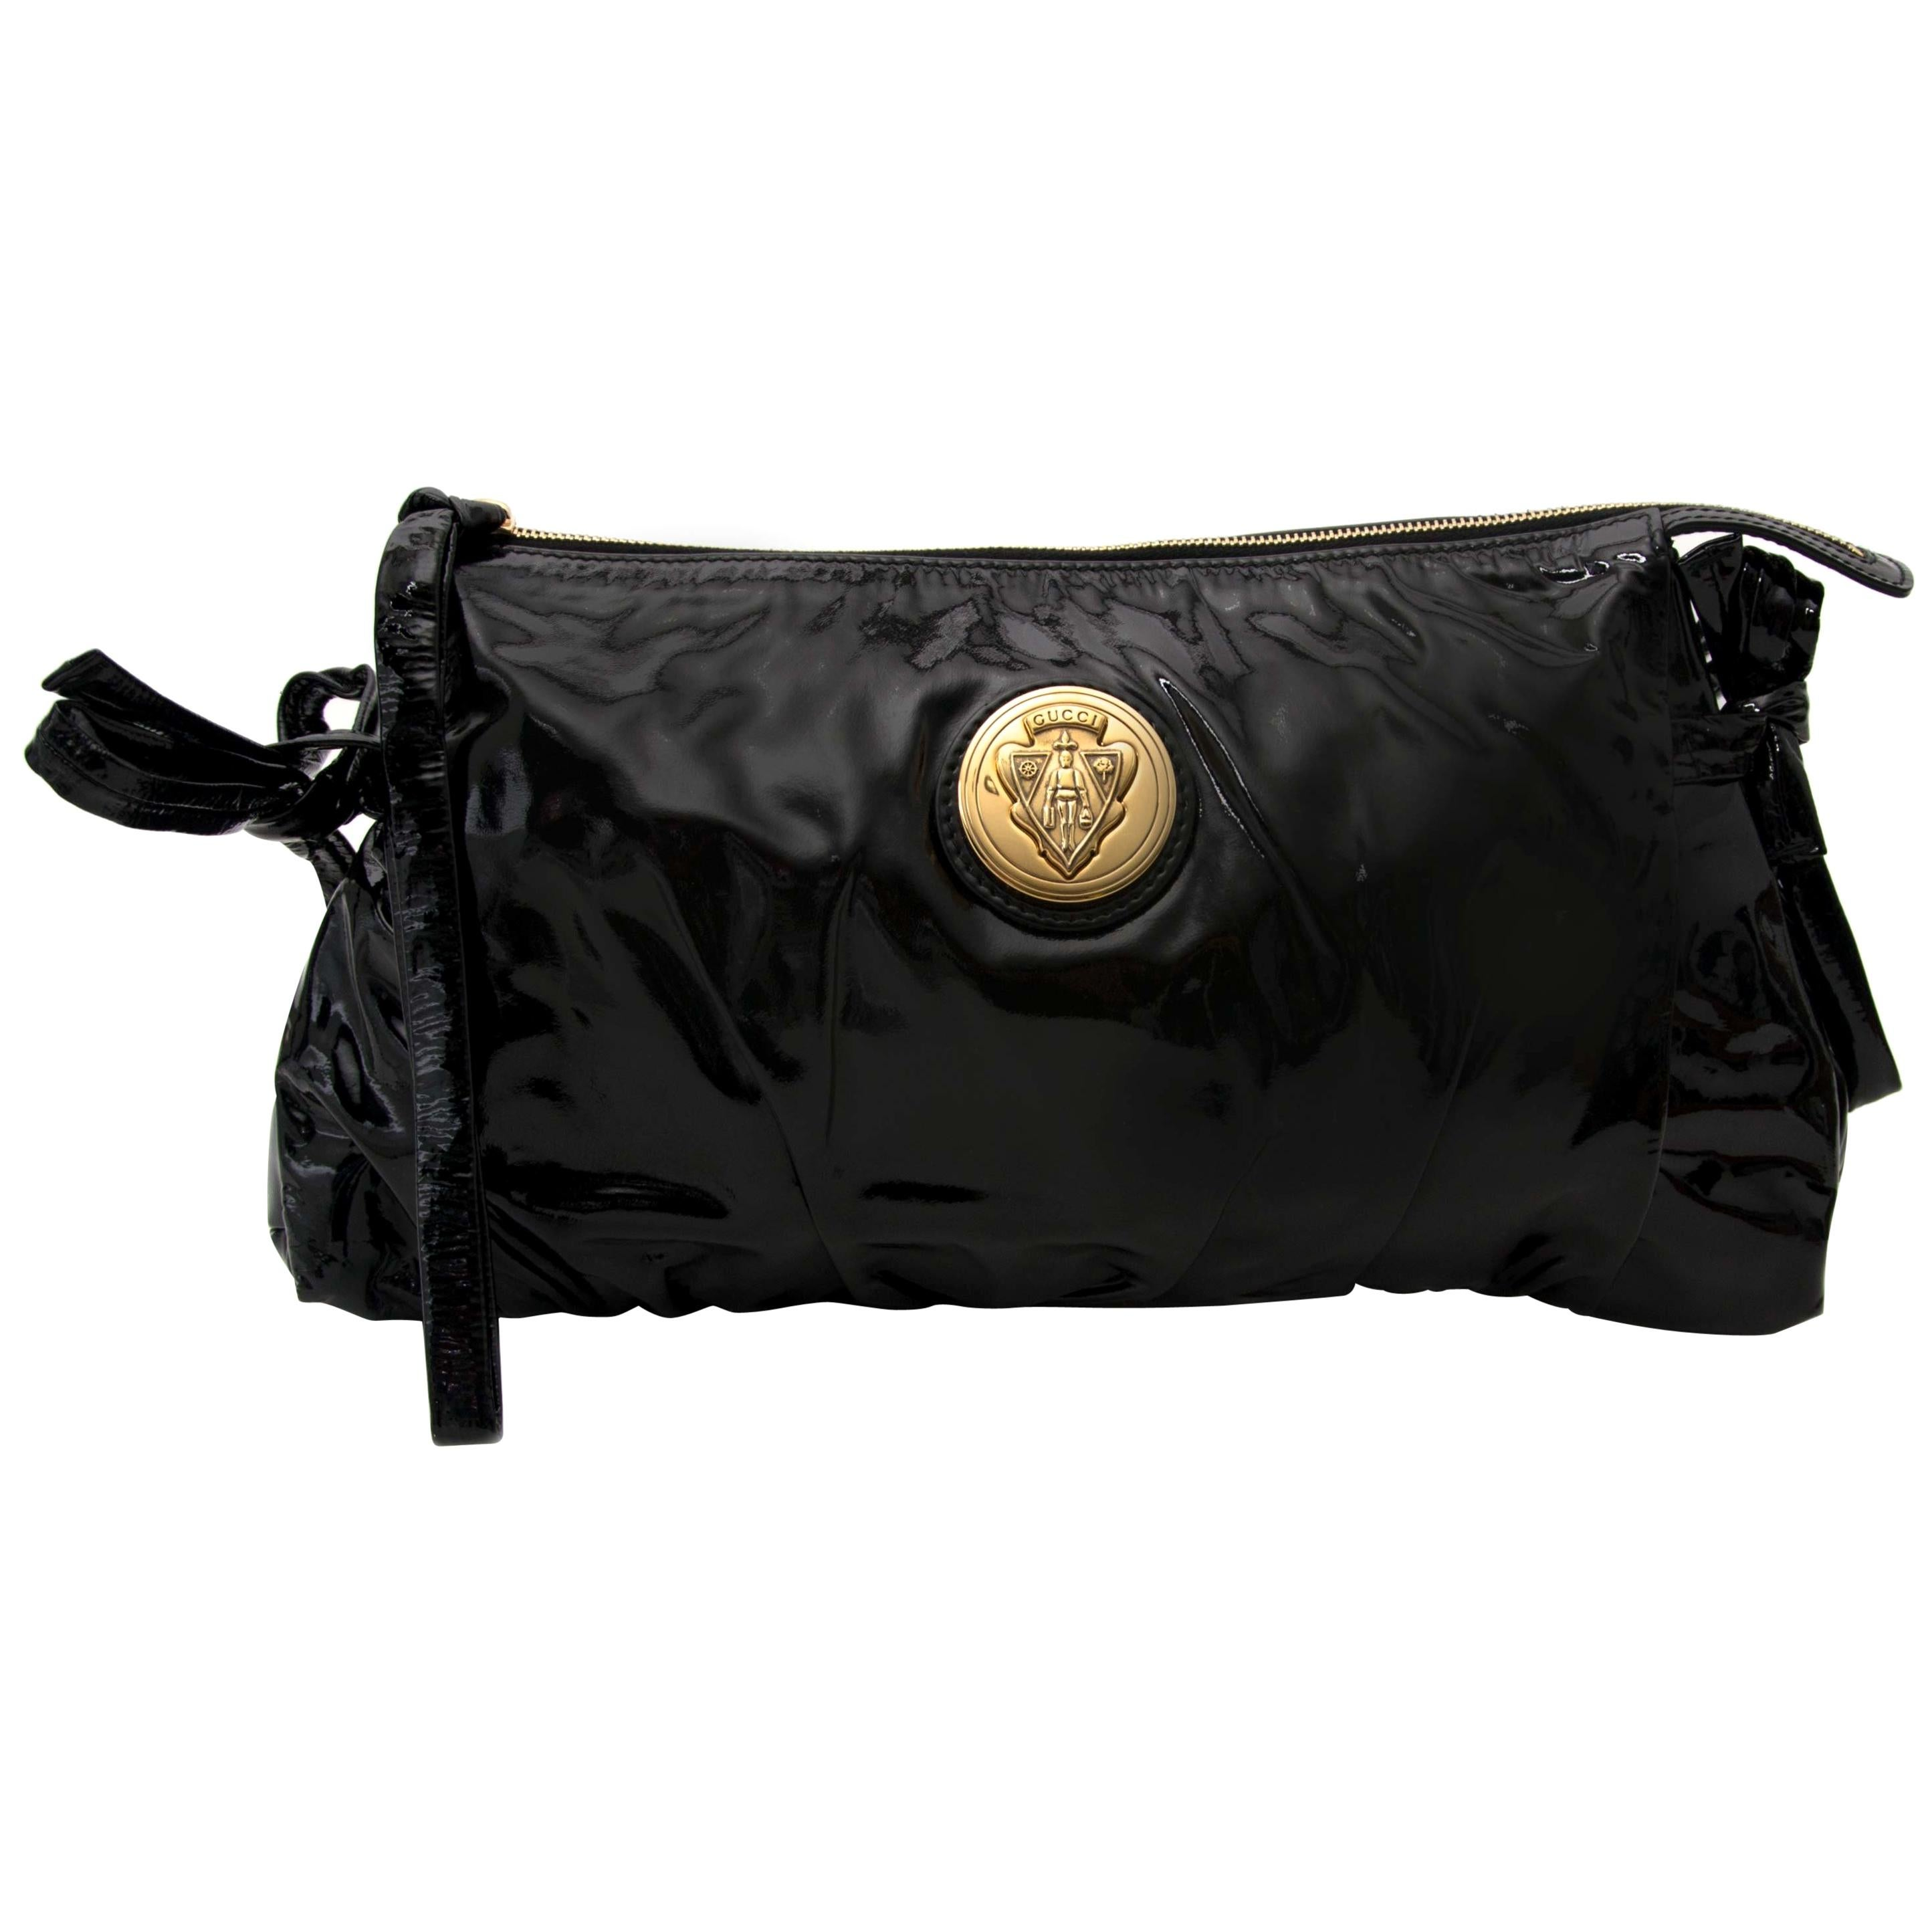 07804e2dff08 Vintage Gucci Clutches - 103 For Sale at 1stdibs